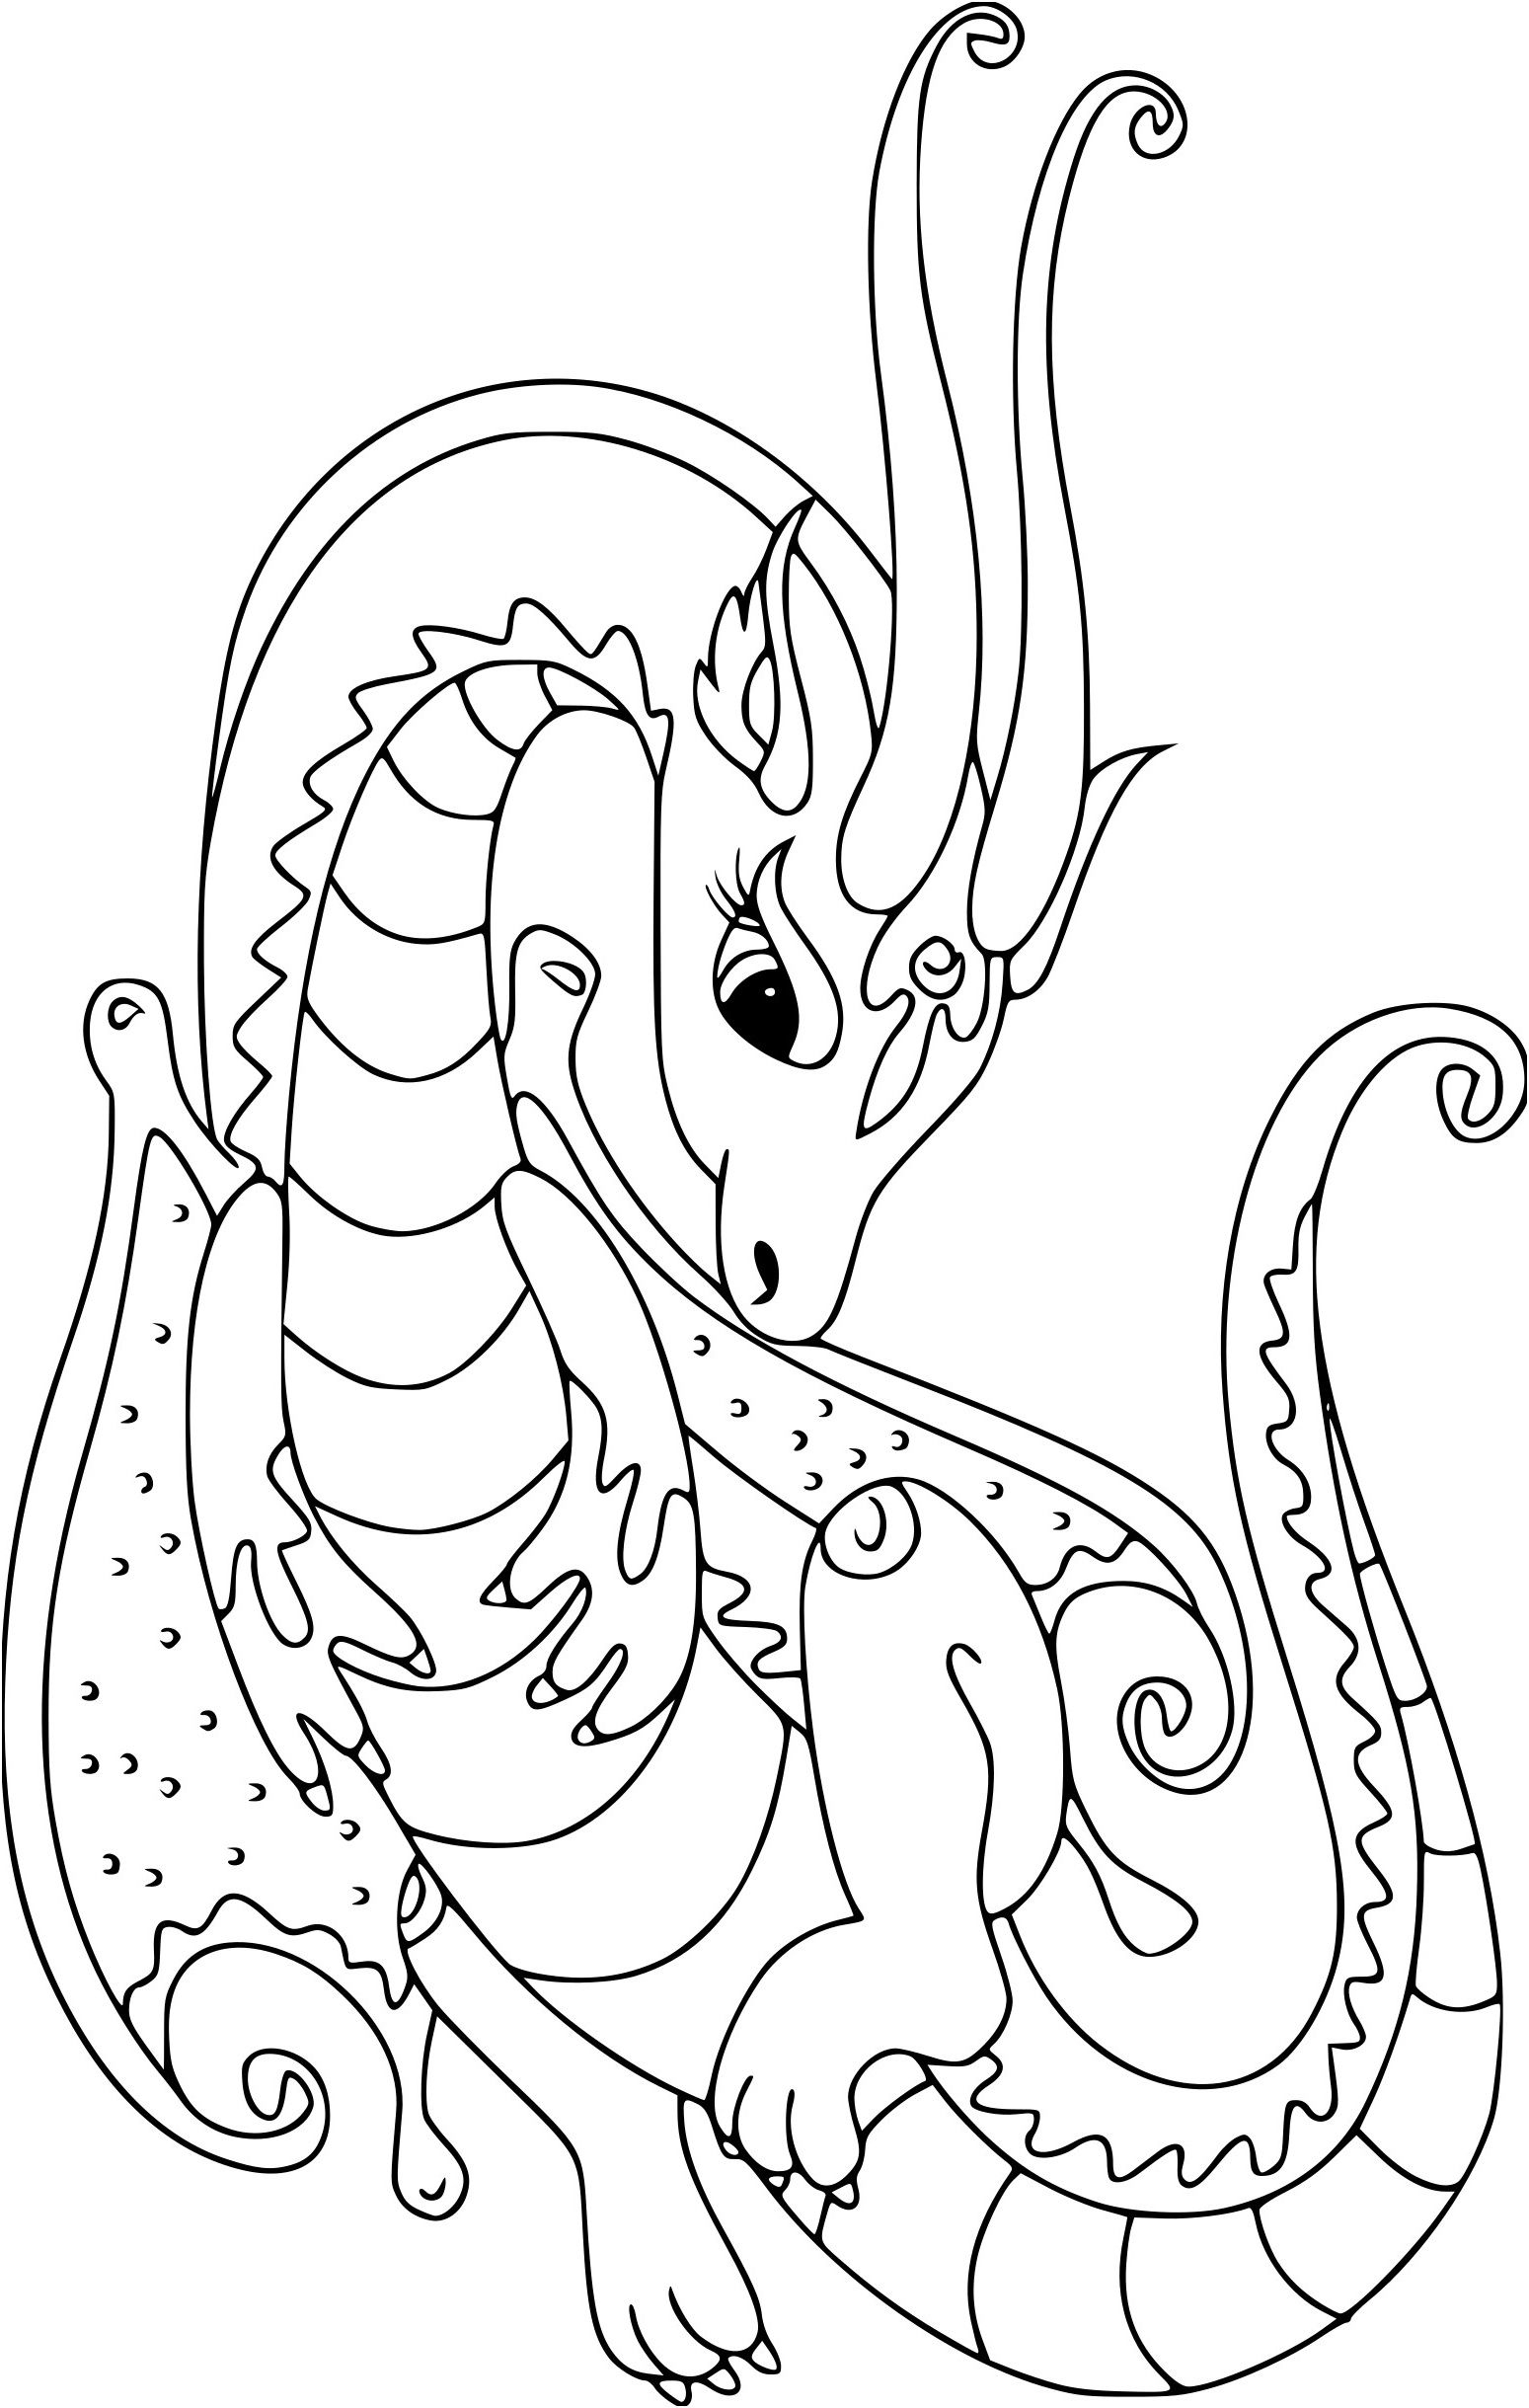 9 Excellent Coloriage Pour Filles Image In 2020 | Dragon à Coloriage Difficile Dragon